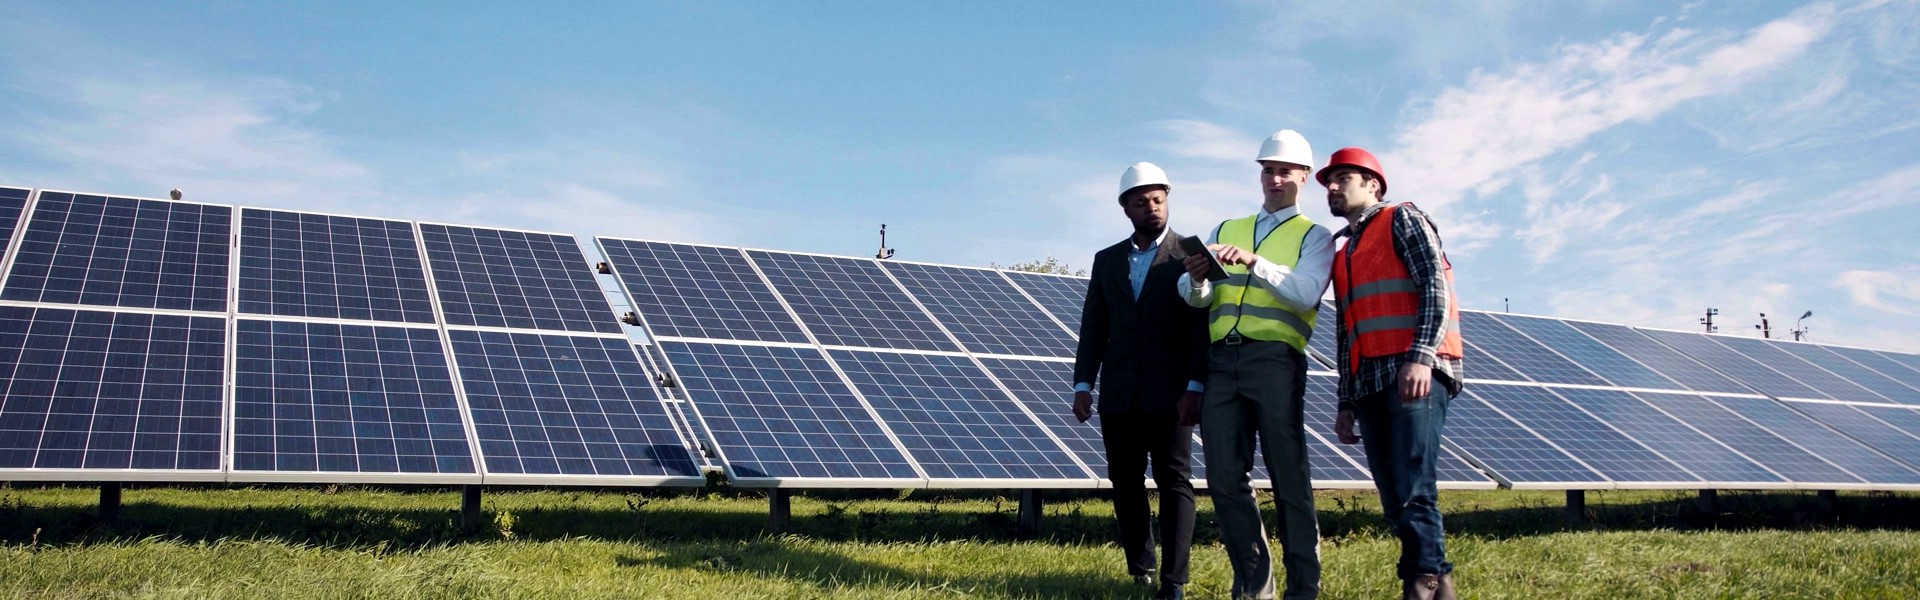 We stand for the creation, growth, and preservation of clean energy jobs in the Commonwealth.